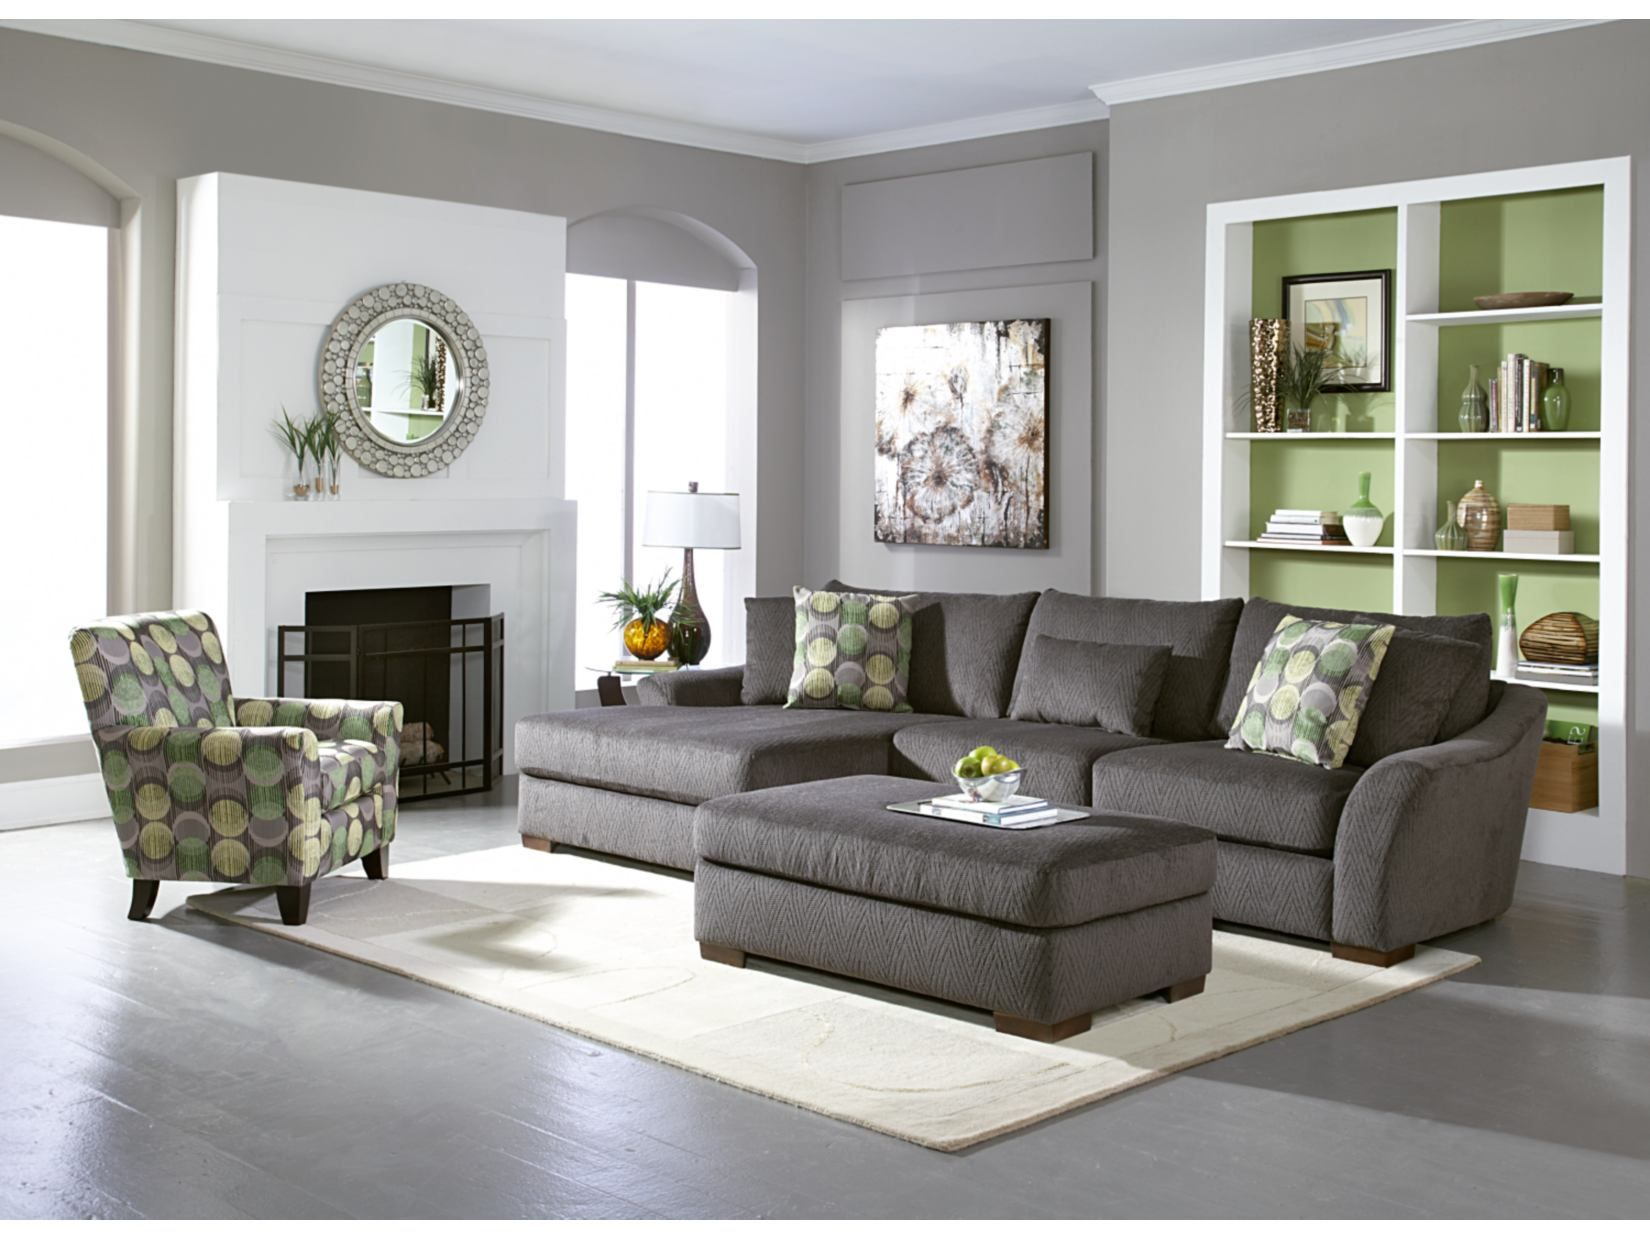 oasis grey 2 pc sectional american signature furniture possibly my new living room set. Black Bedroom Furniture Sets. Home Design Ideas